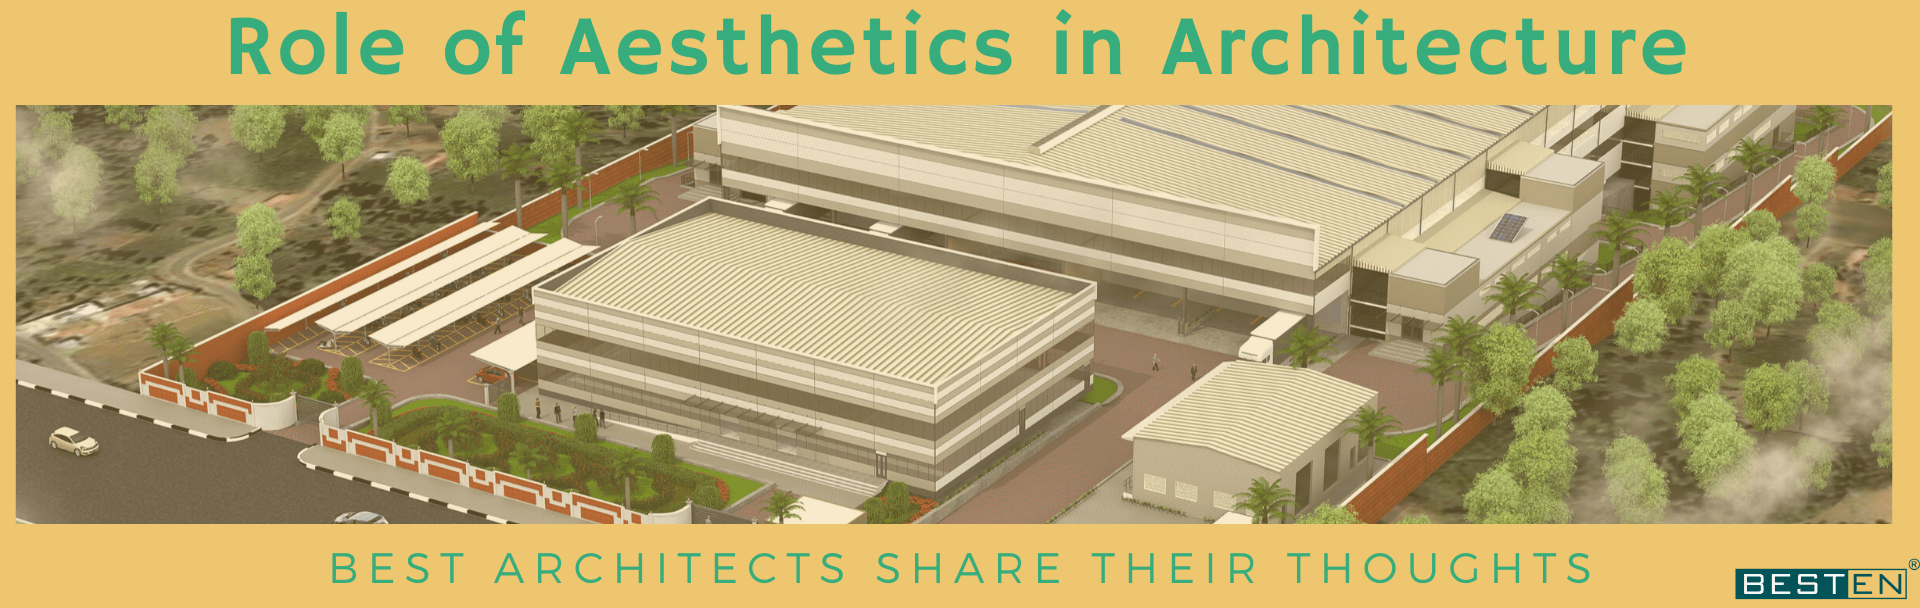 Industrial architects and consultants